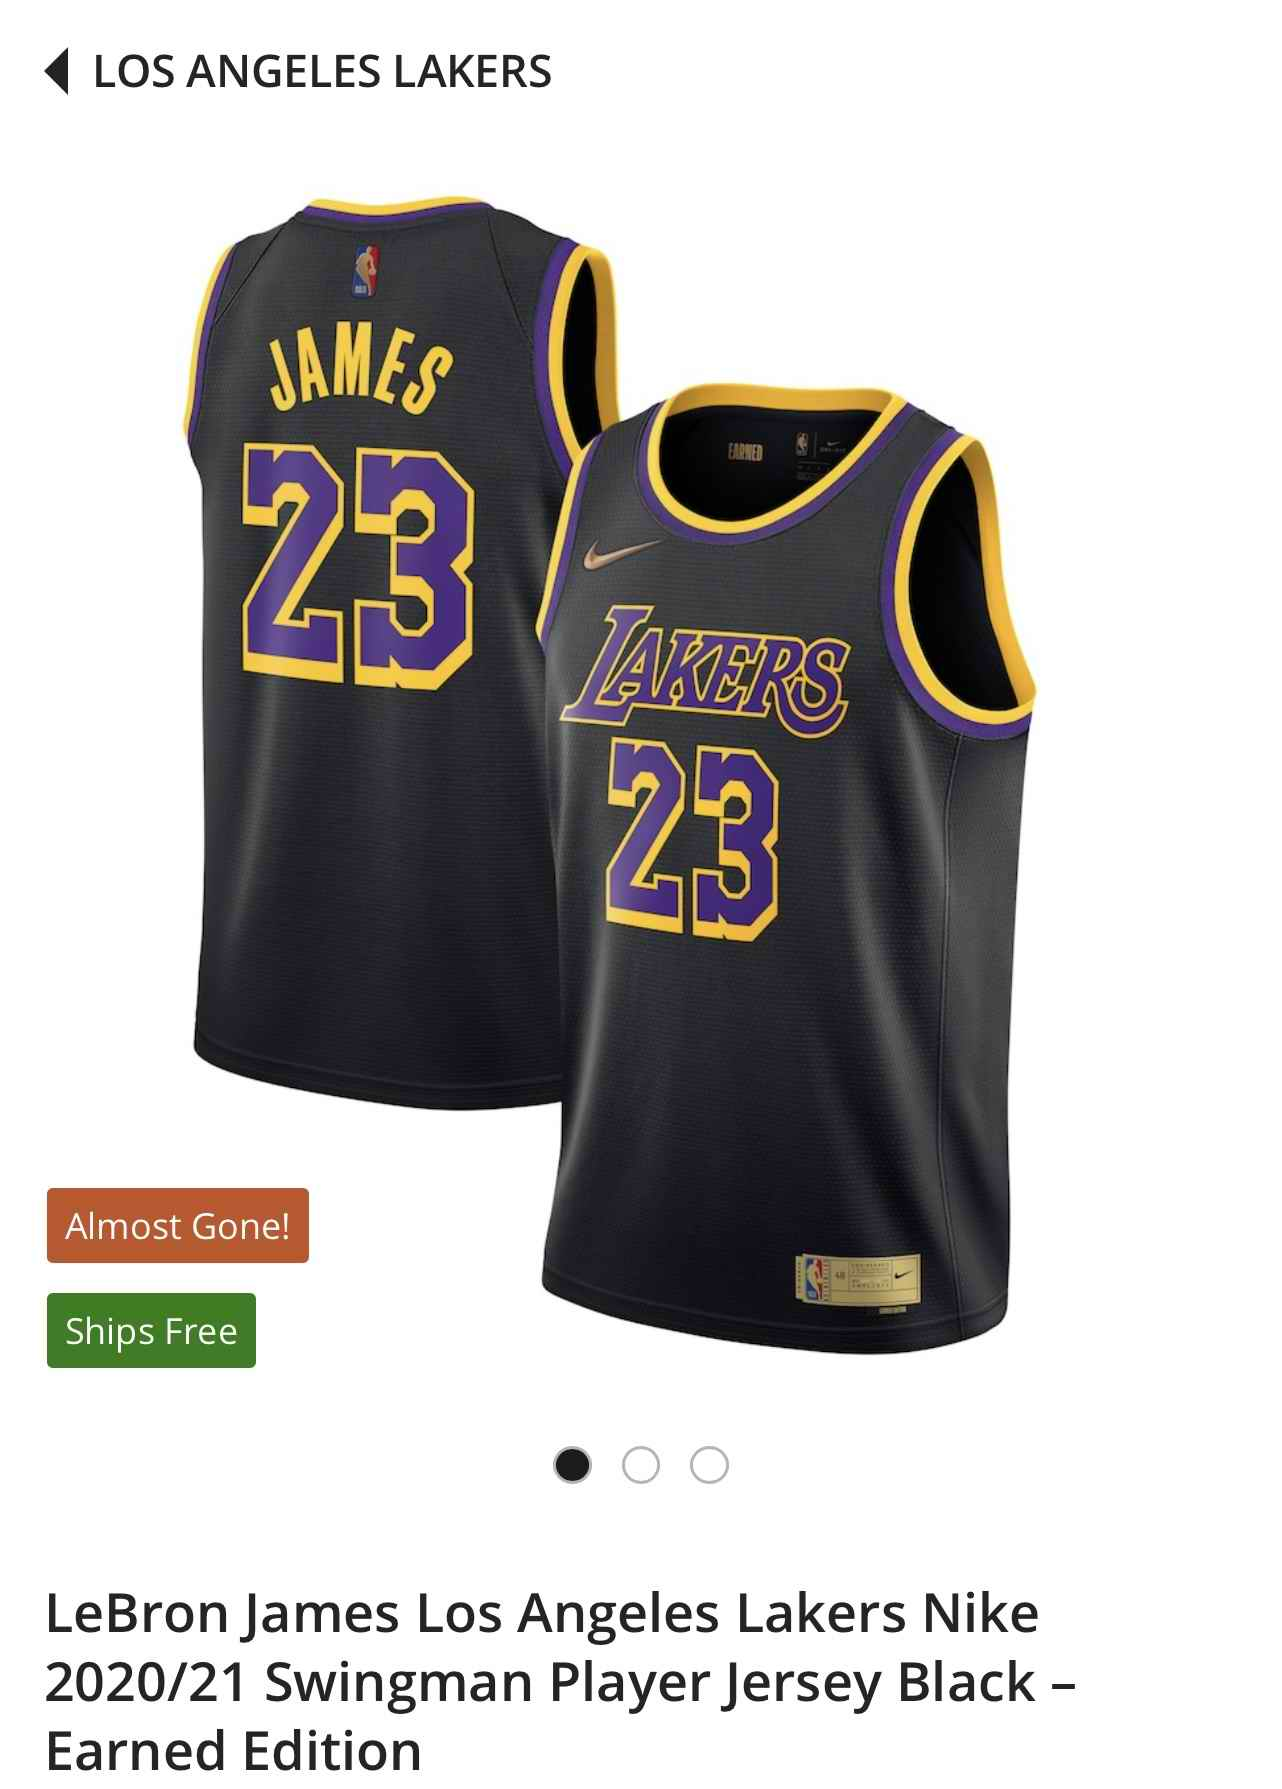 Los Angeles Lakers 23 Lebron James nike 2020-21 Swing player black Earned Edition Jersey